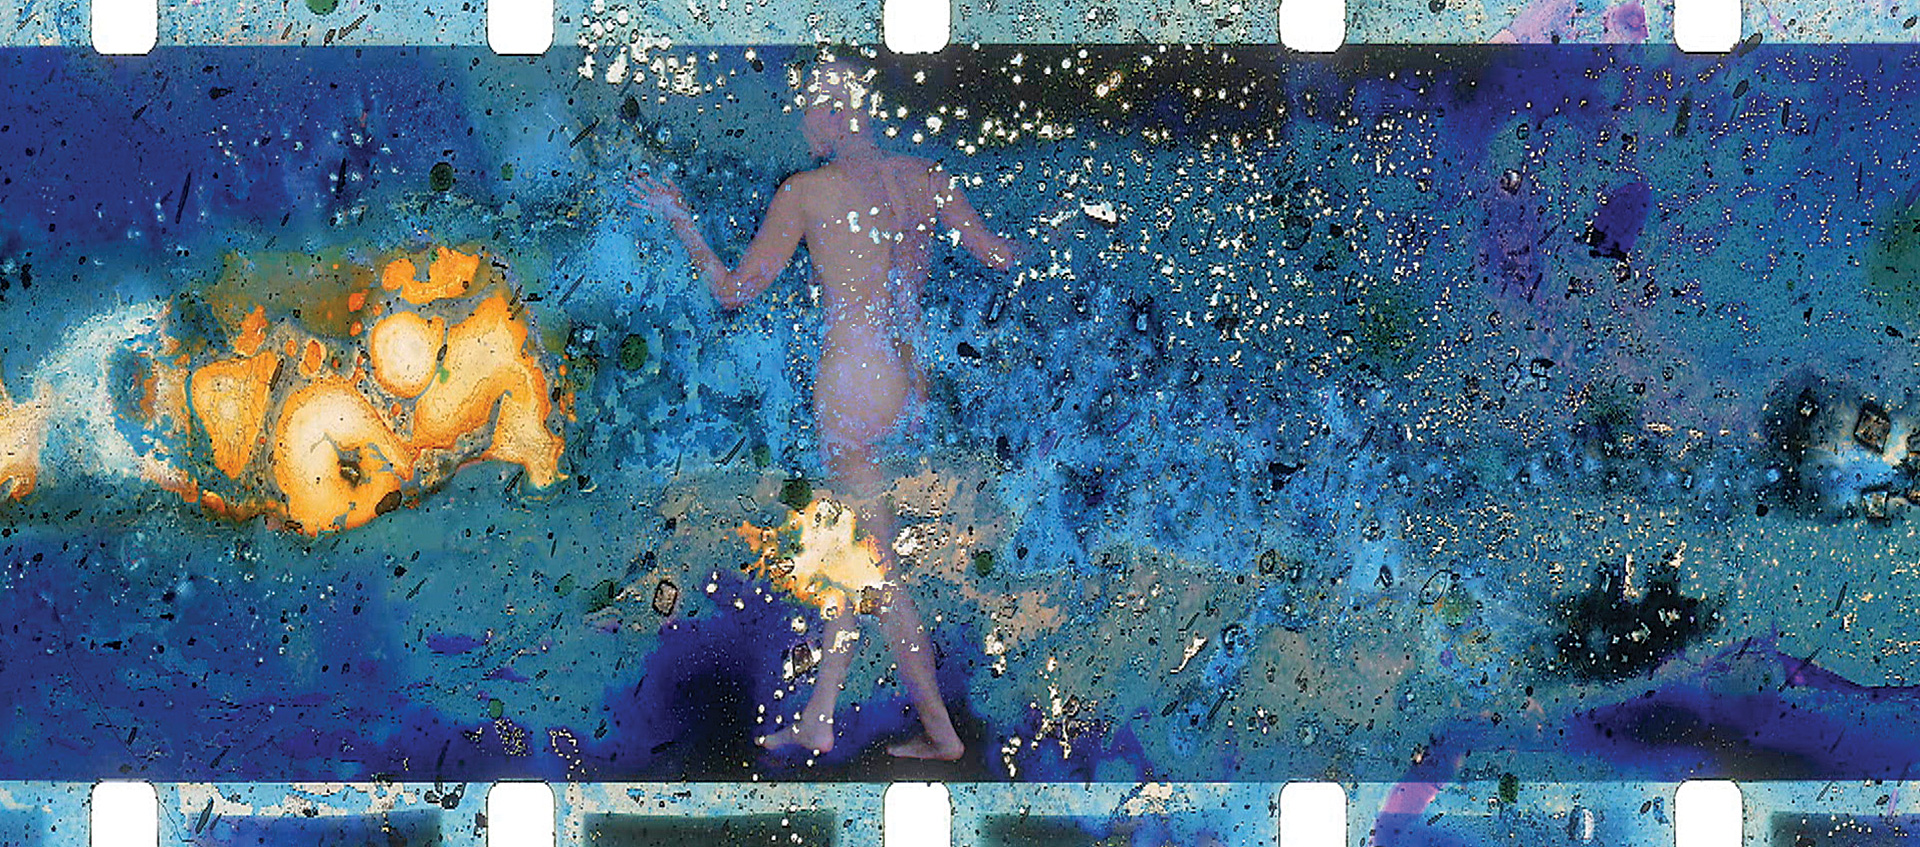 Barbara Hammer: In This Body